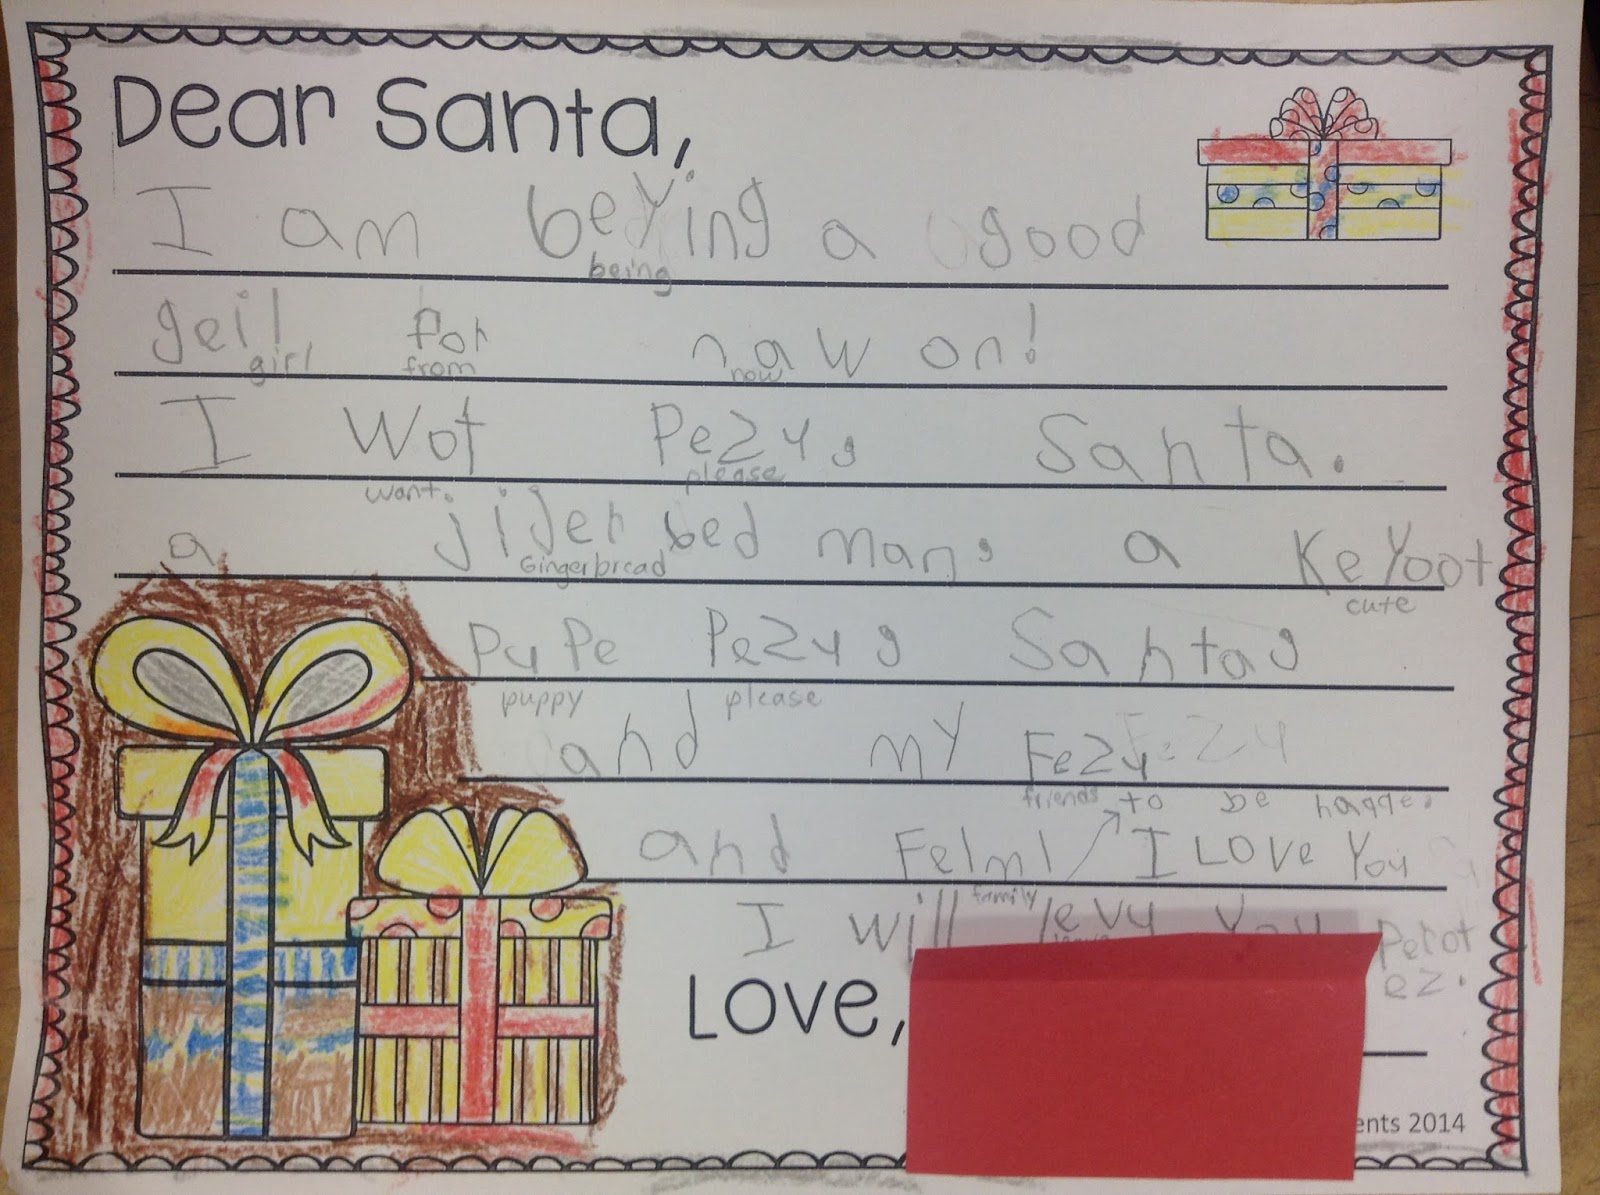 santa essay Unlike most editing & proofreading services, we edit for everything: grammar, spelling, punctuation, idea flow, sentence structure, & more get started now.